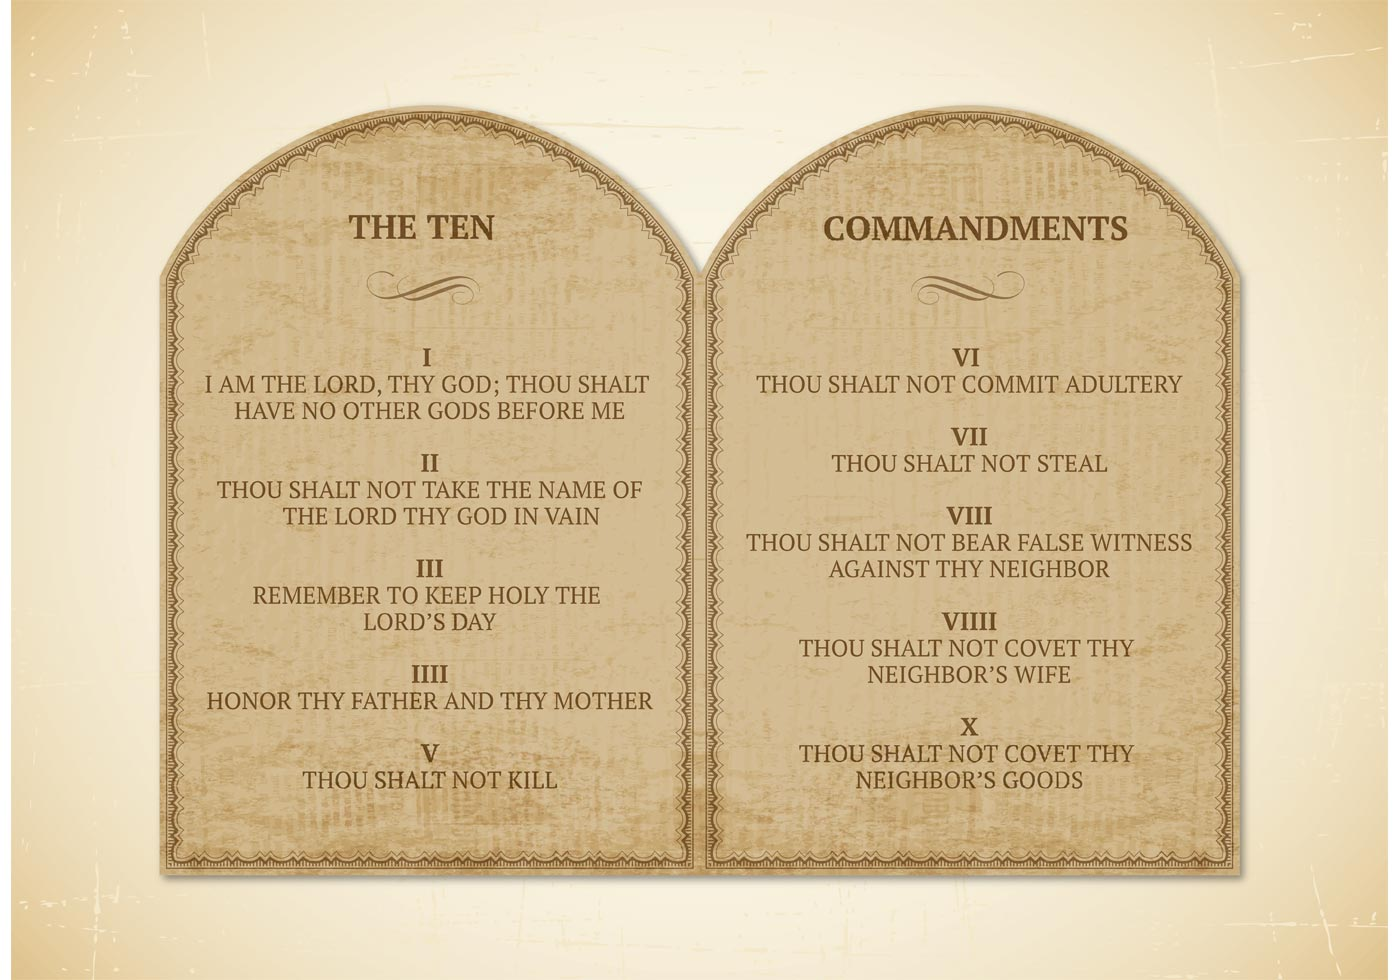 an analysis of the ten commandments Exodus 20:1-17 - the ten commandments summary the ten commandments analysis the role of the ten commandments in the community of faith has been so extensive and so deeply commented on that little can be added in this format.